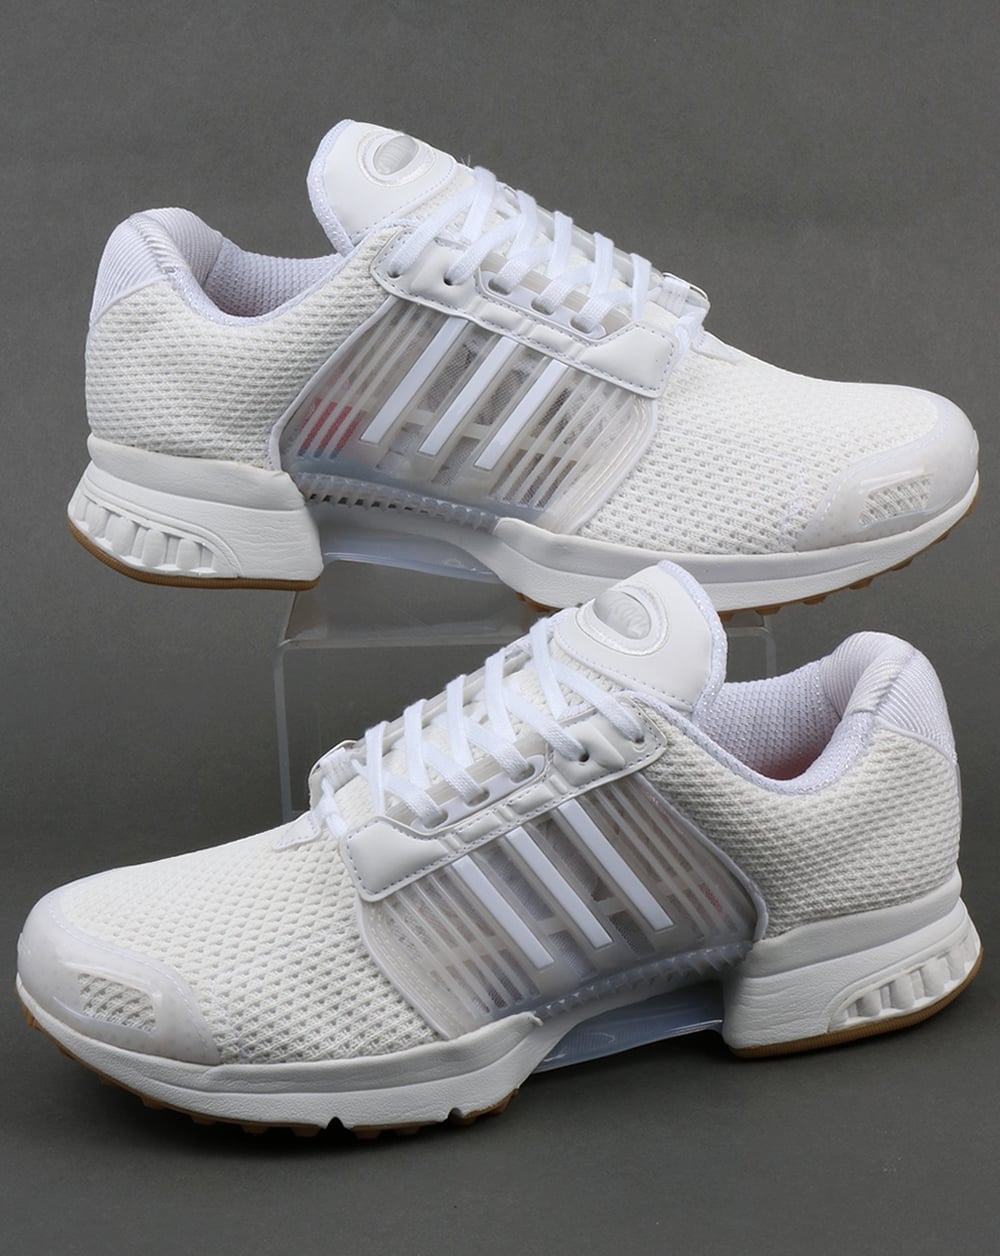 reputable site 9d78a 9209d Adidas Climacool 1 Trainers White/Gum